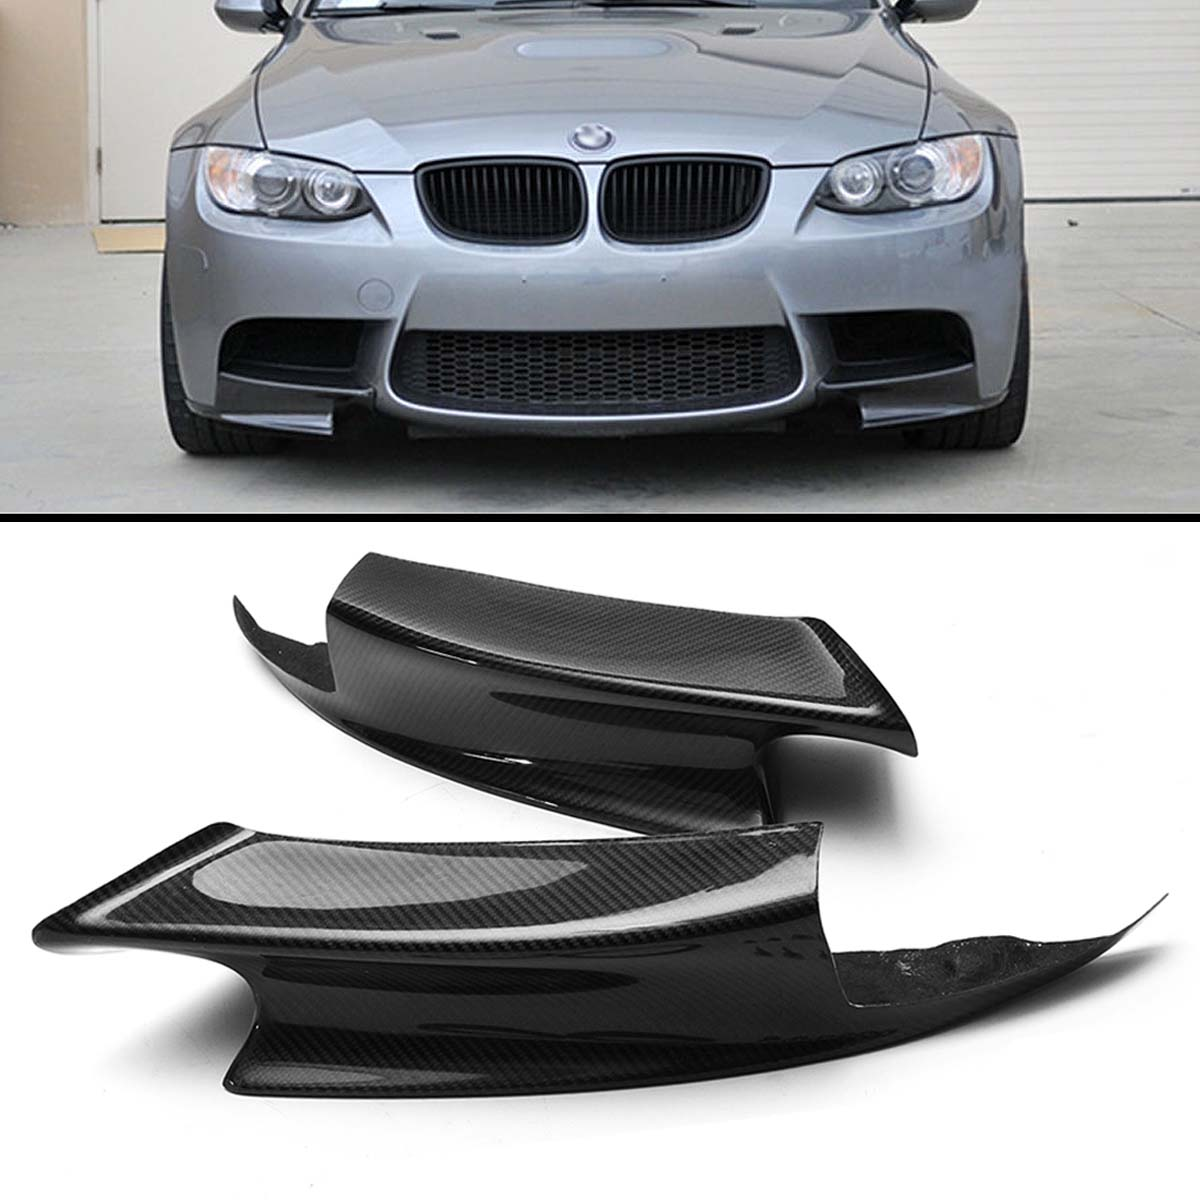 2PCS Carbon Fiber Front Bumper Lip Splitter Spoiler Flap Cupwings for B MW 07-12 E92 E93 M3 M-sport Bumper olotdi carbon fiber front lip spoiler gts style front bumper for bmw e92 e93 m3 bumper car styling accessories factory